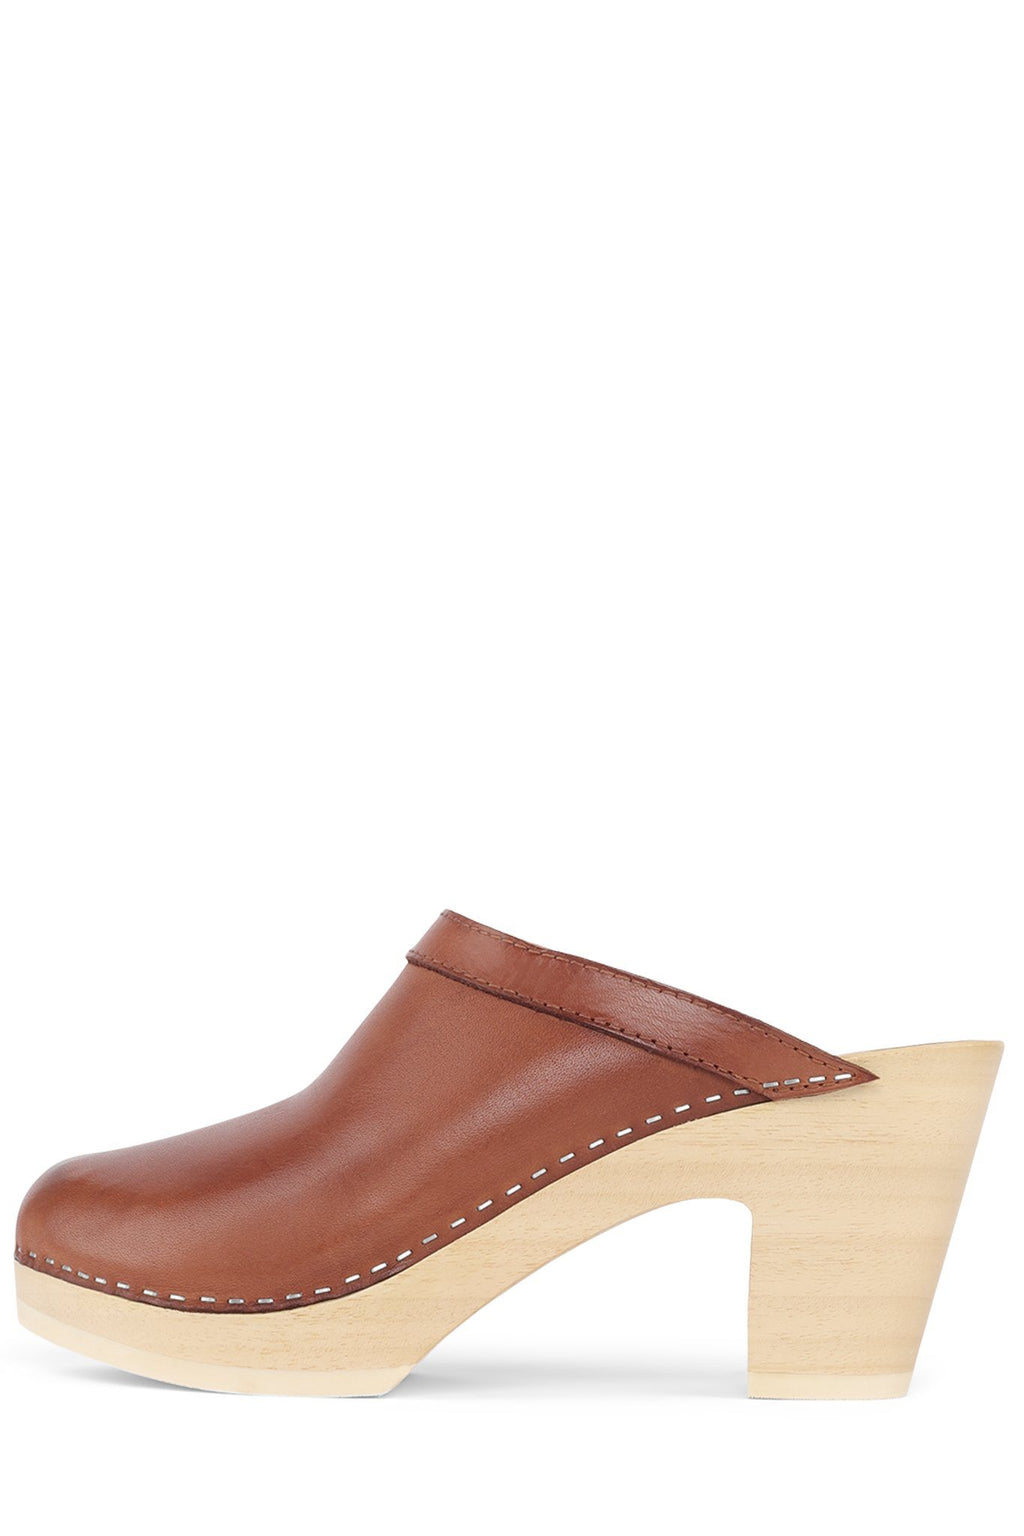 ALYSSE Heeled Mule Jeffrey Campbell Tan 36